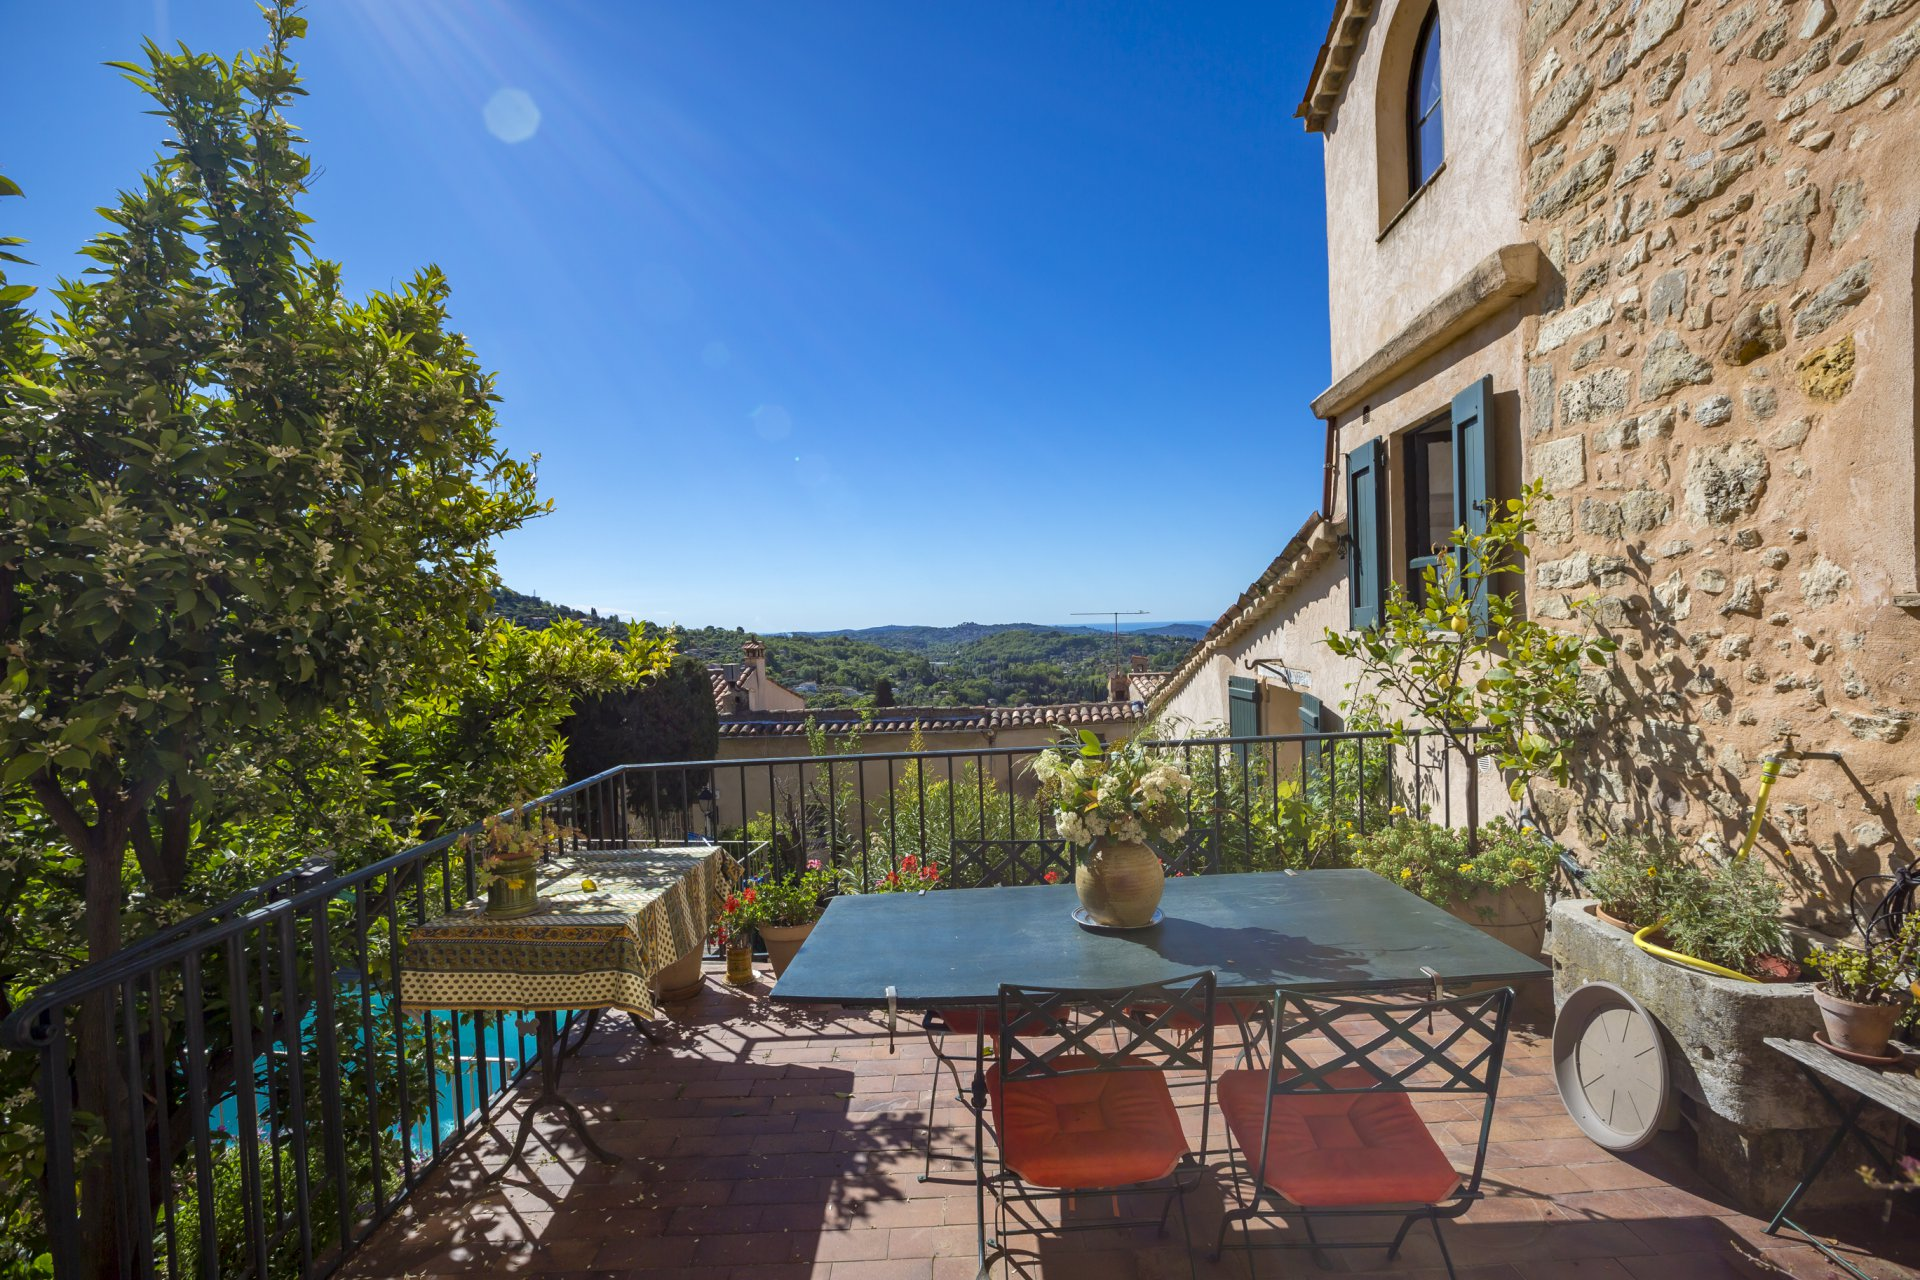 Magagnosc La Lauve: charming village house with garden and swiming pool